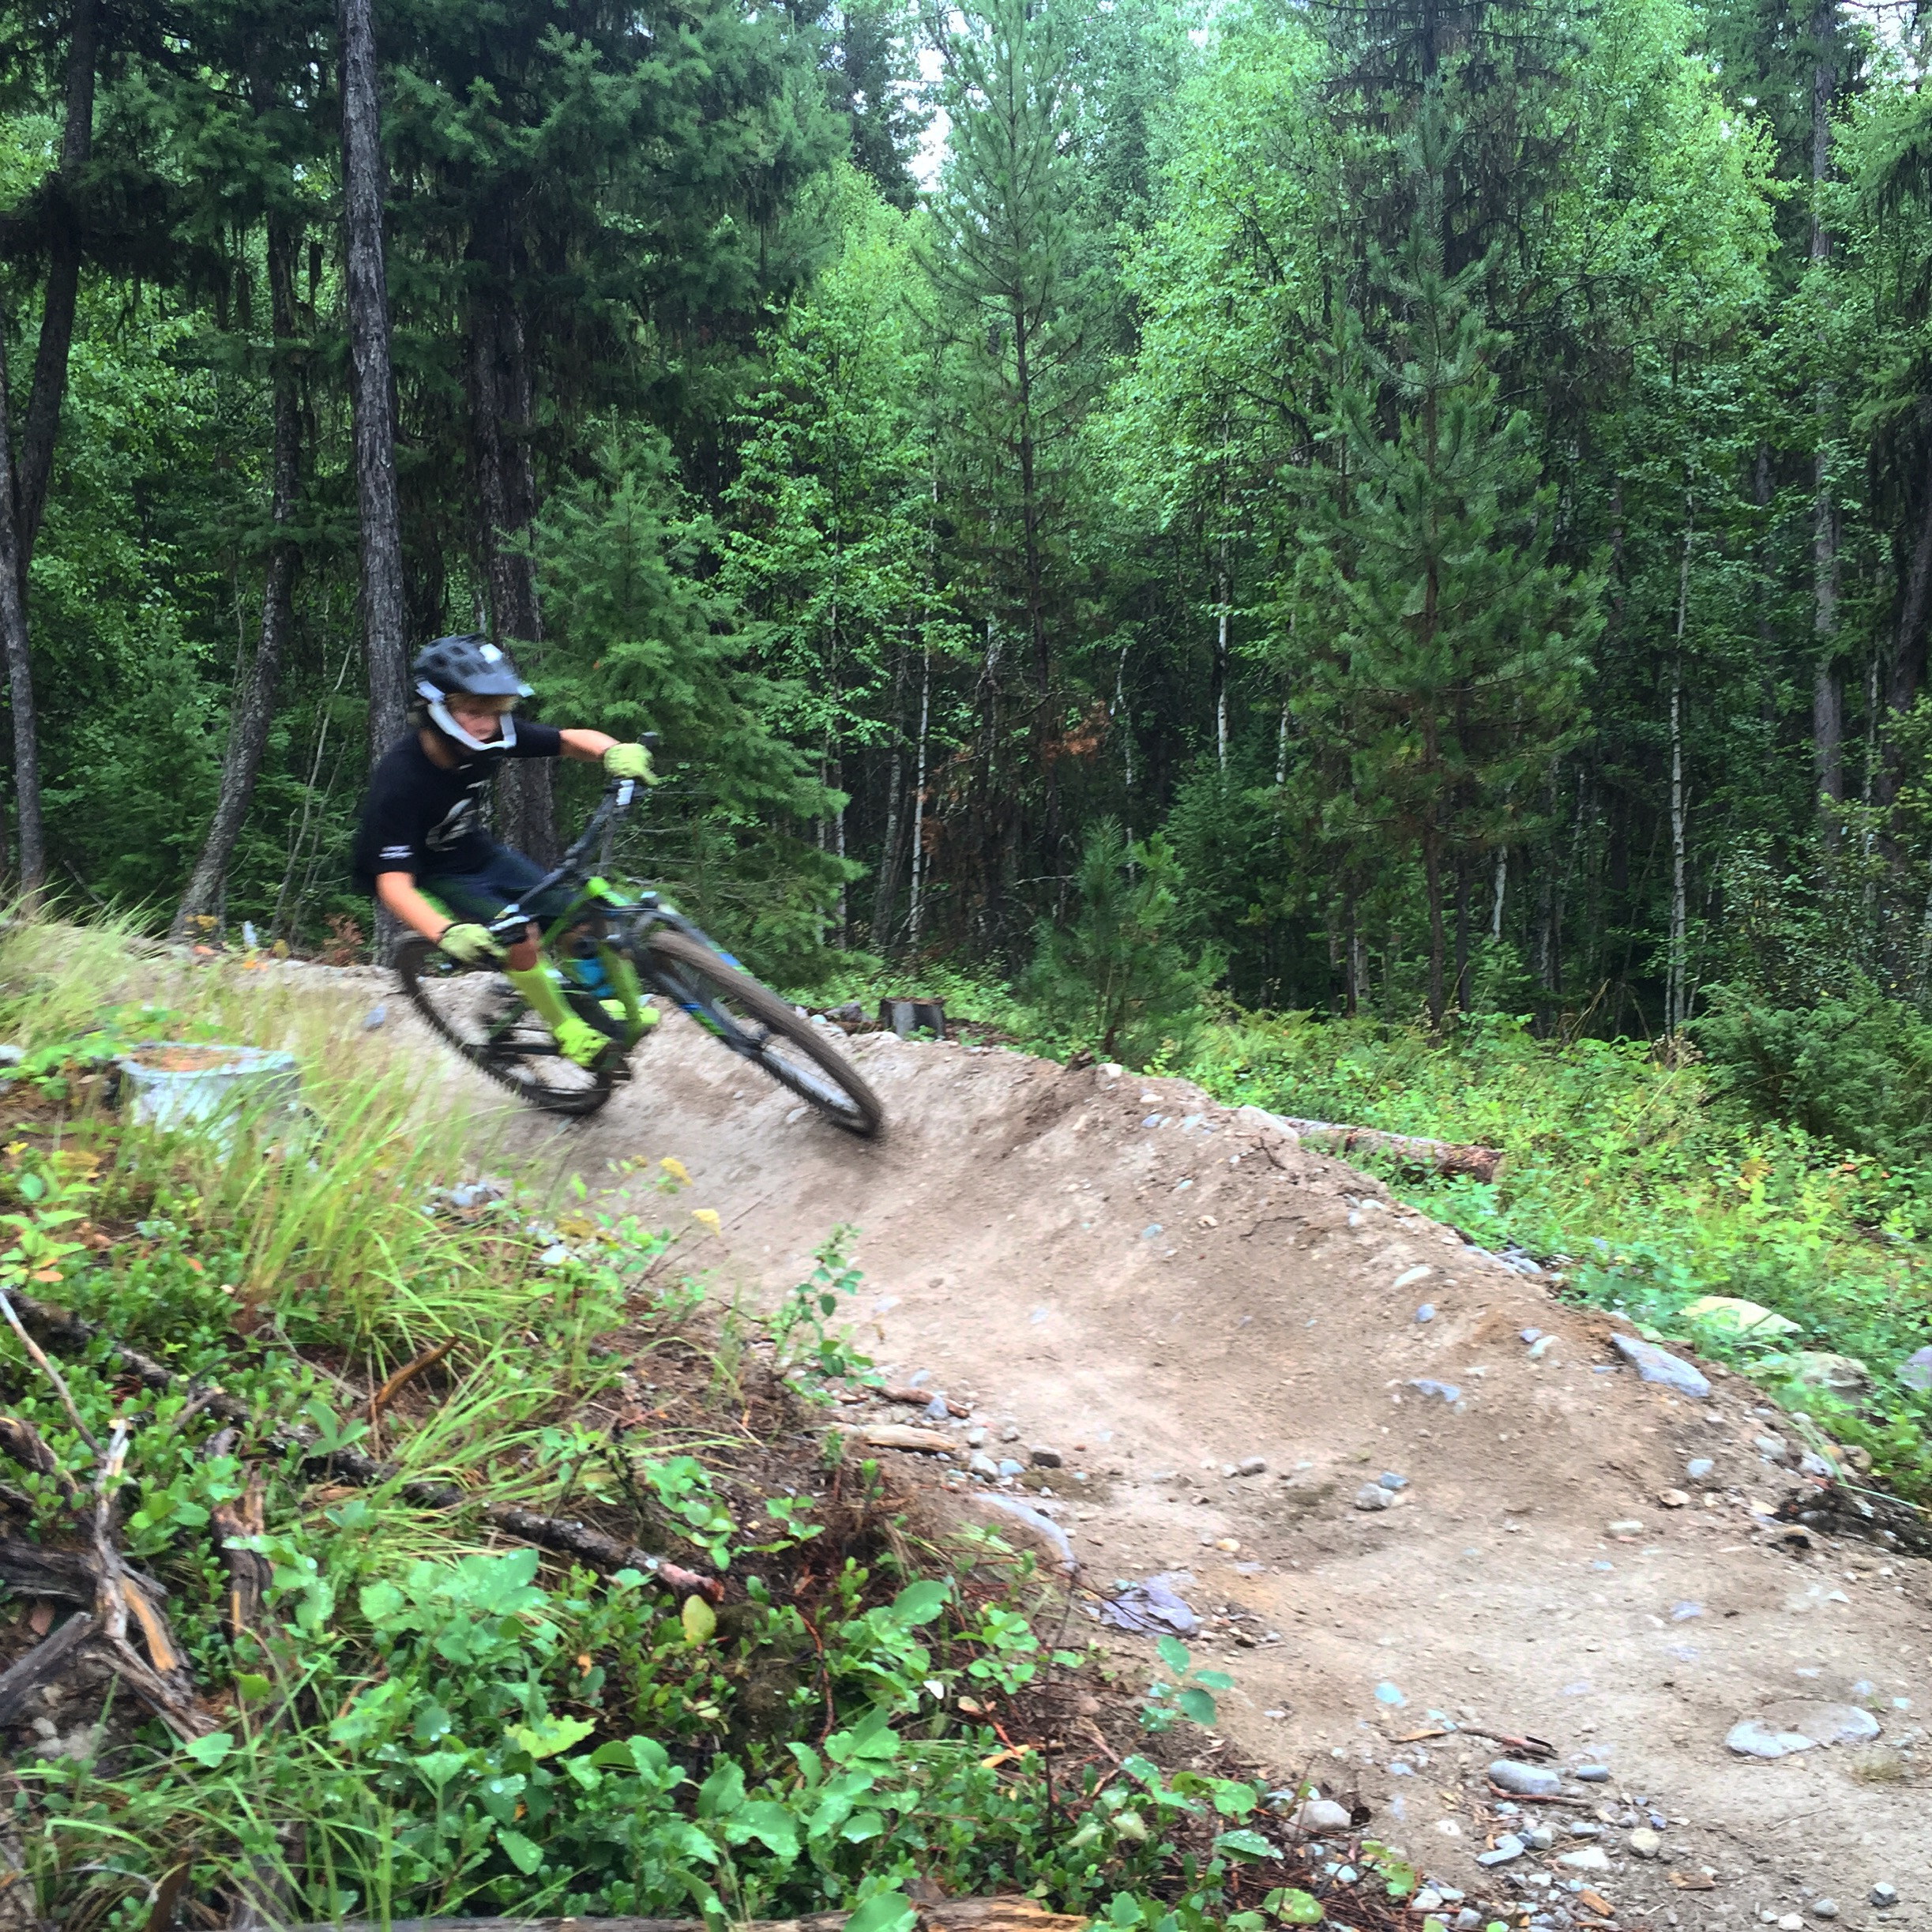 Kalden heading down the flow trail at Whitefish MTB Retreat.